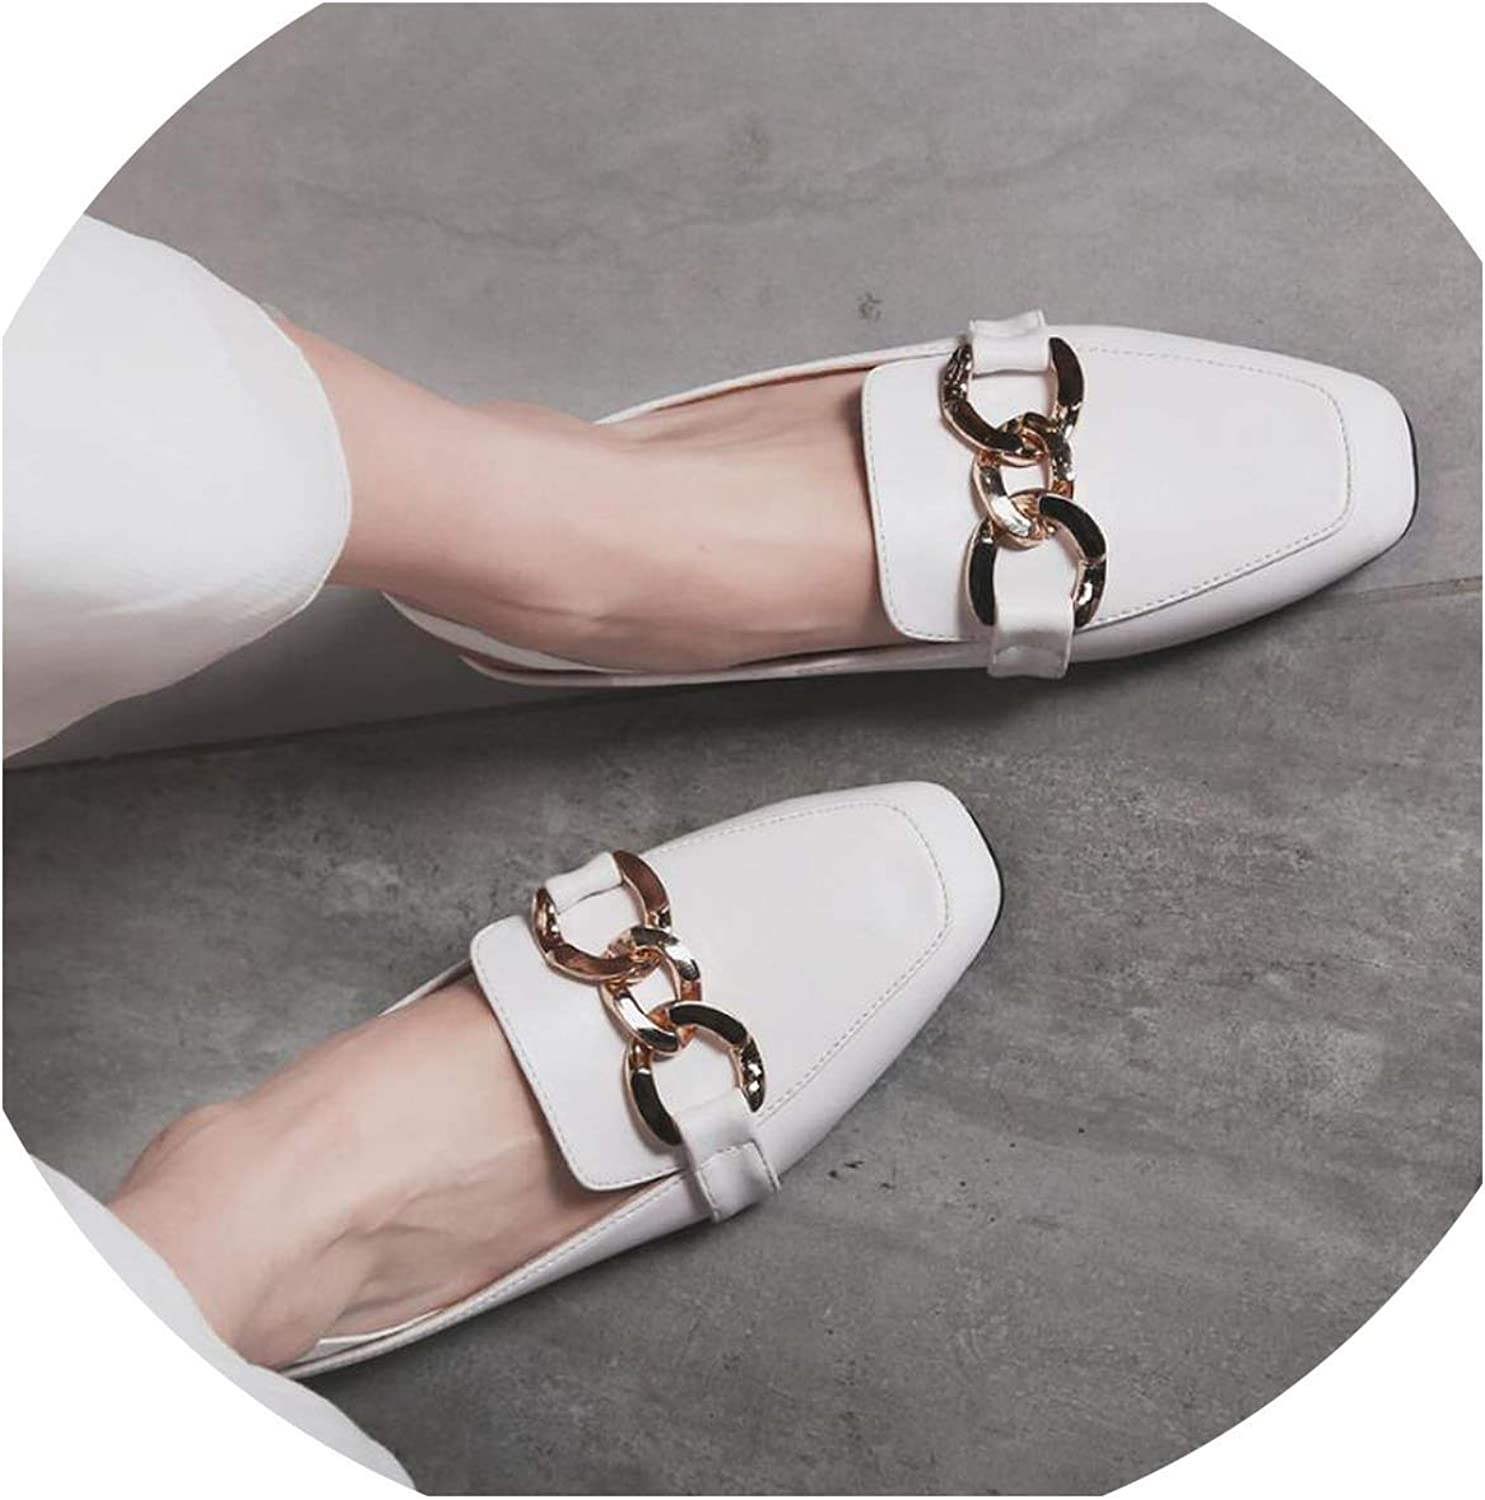 Betterluse Summer Slippers Woman Mules shoes Sandals Tassel Chains Metal Buckle Square Toe Back Strap Mules